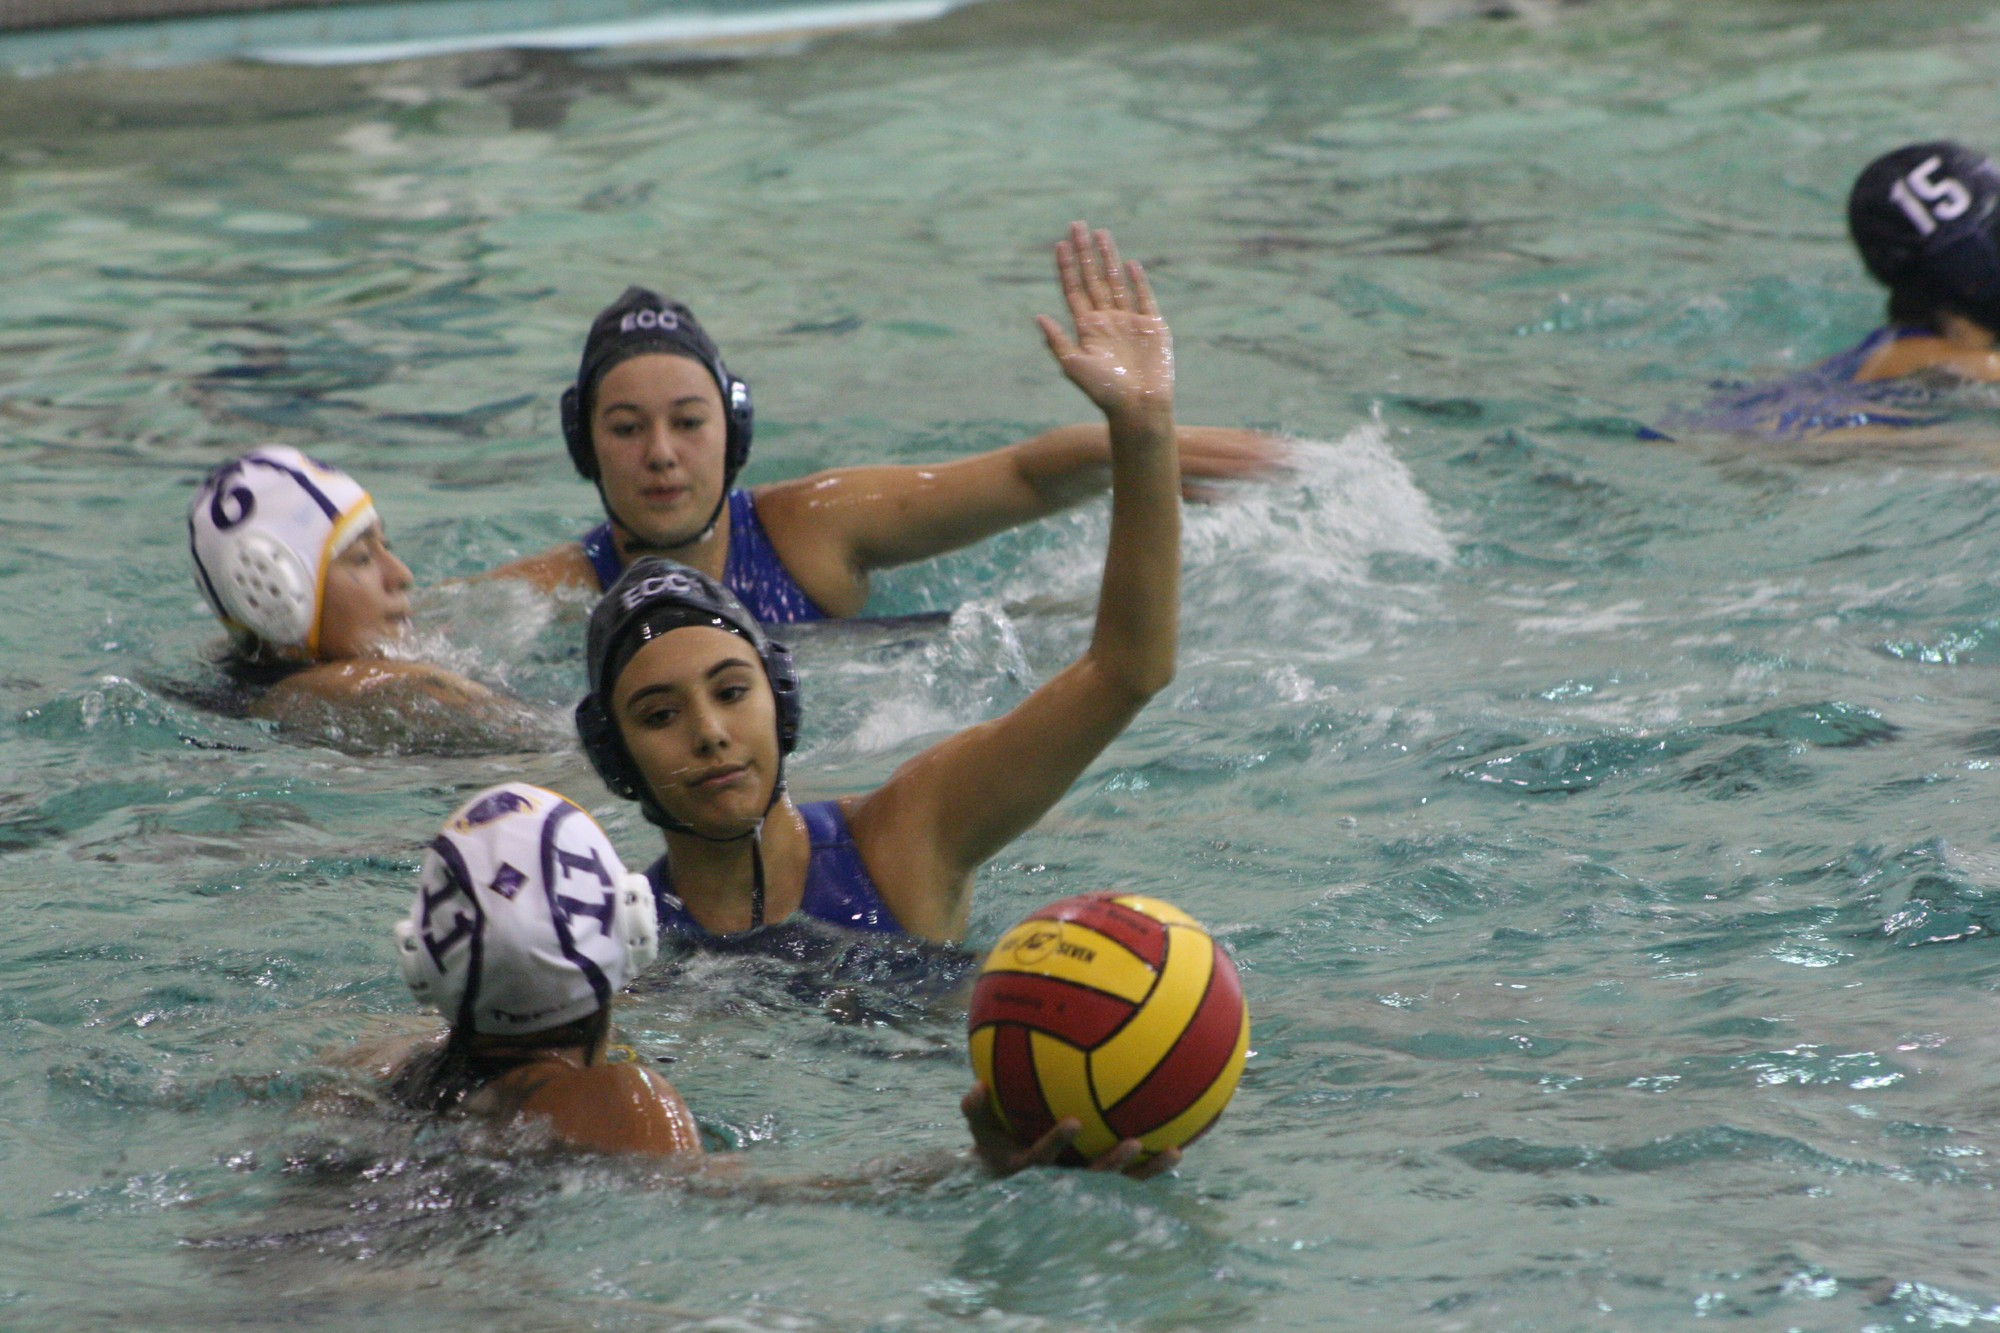 El Camino women's water polo defeats L.A. Trade Tech in a landslide